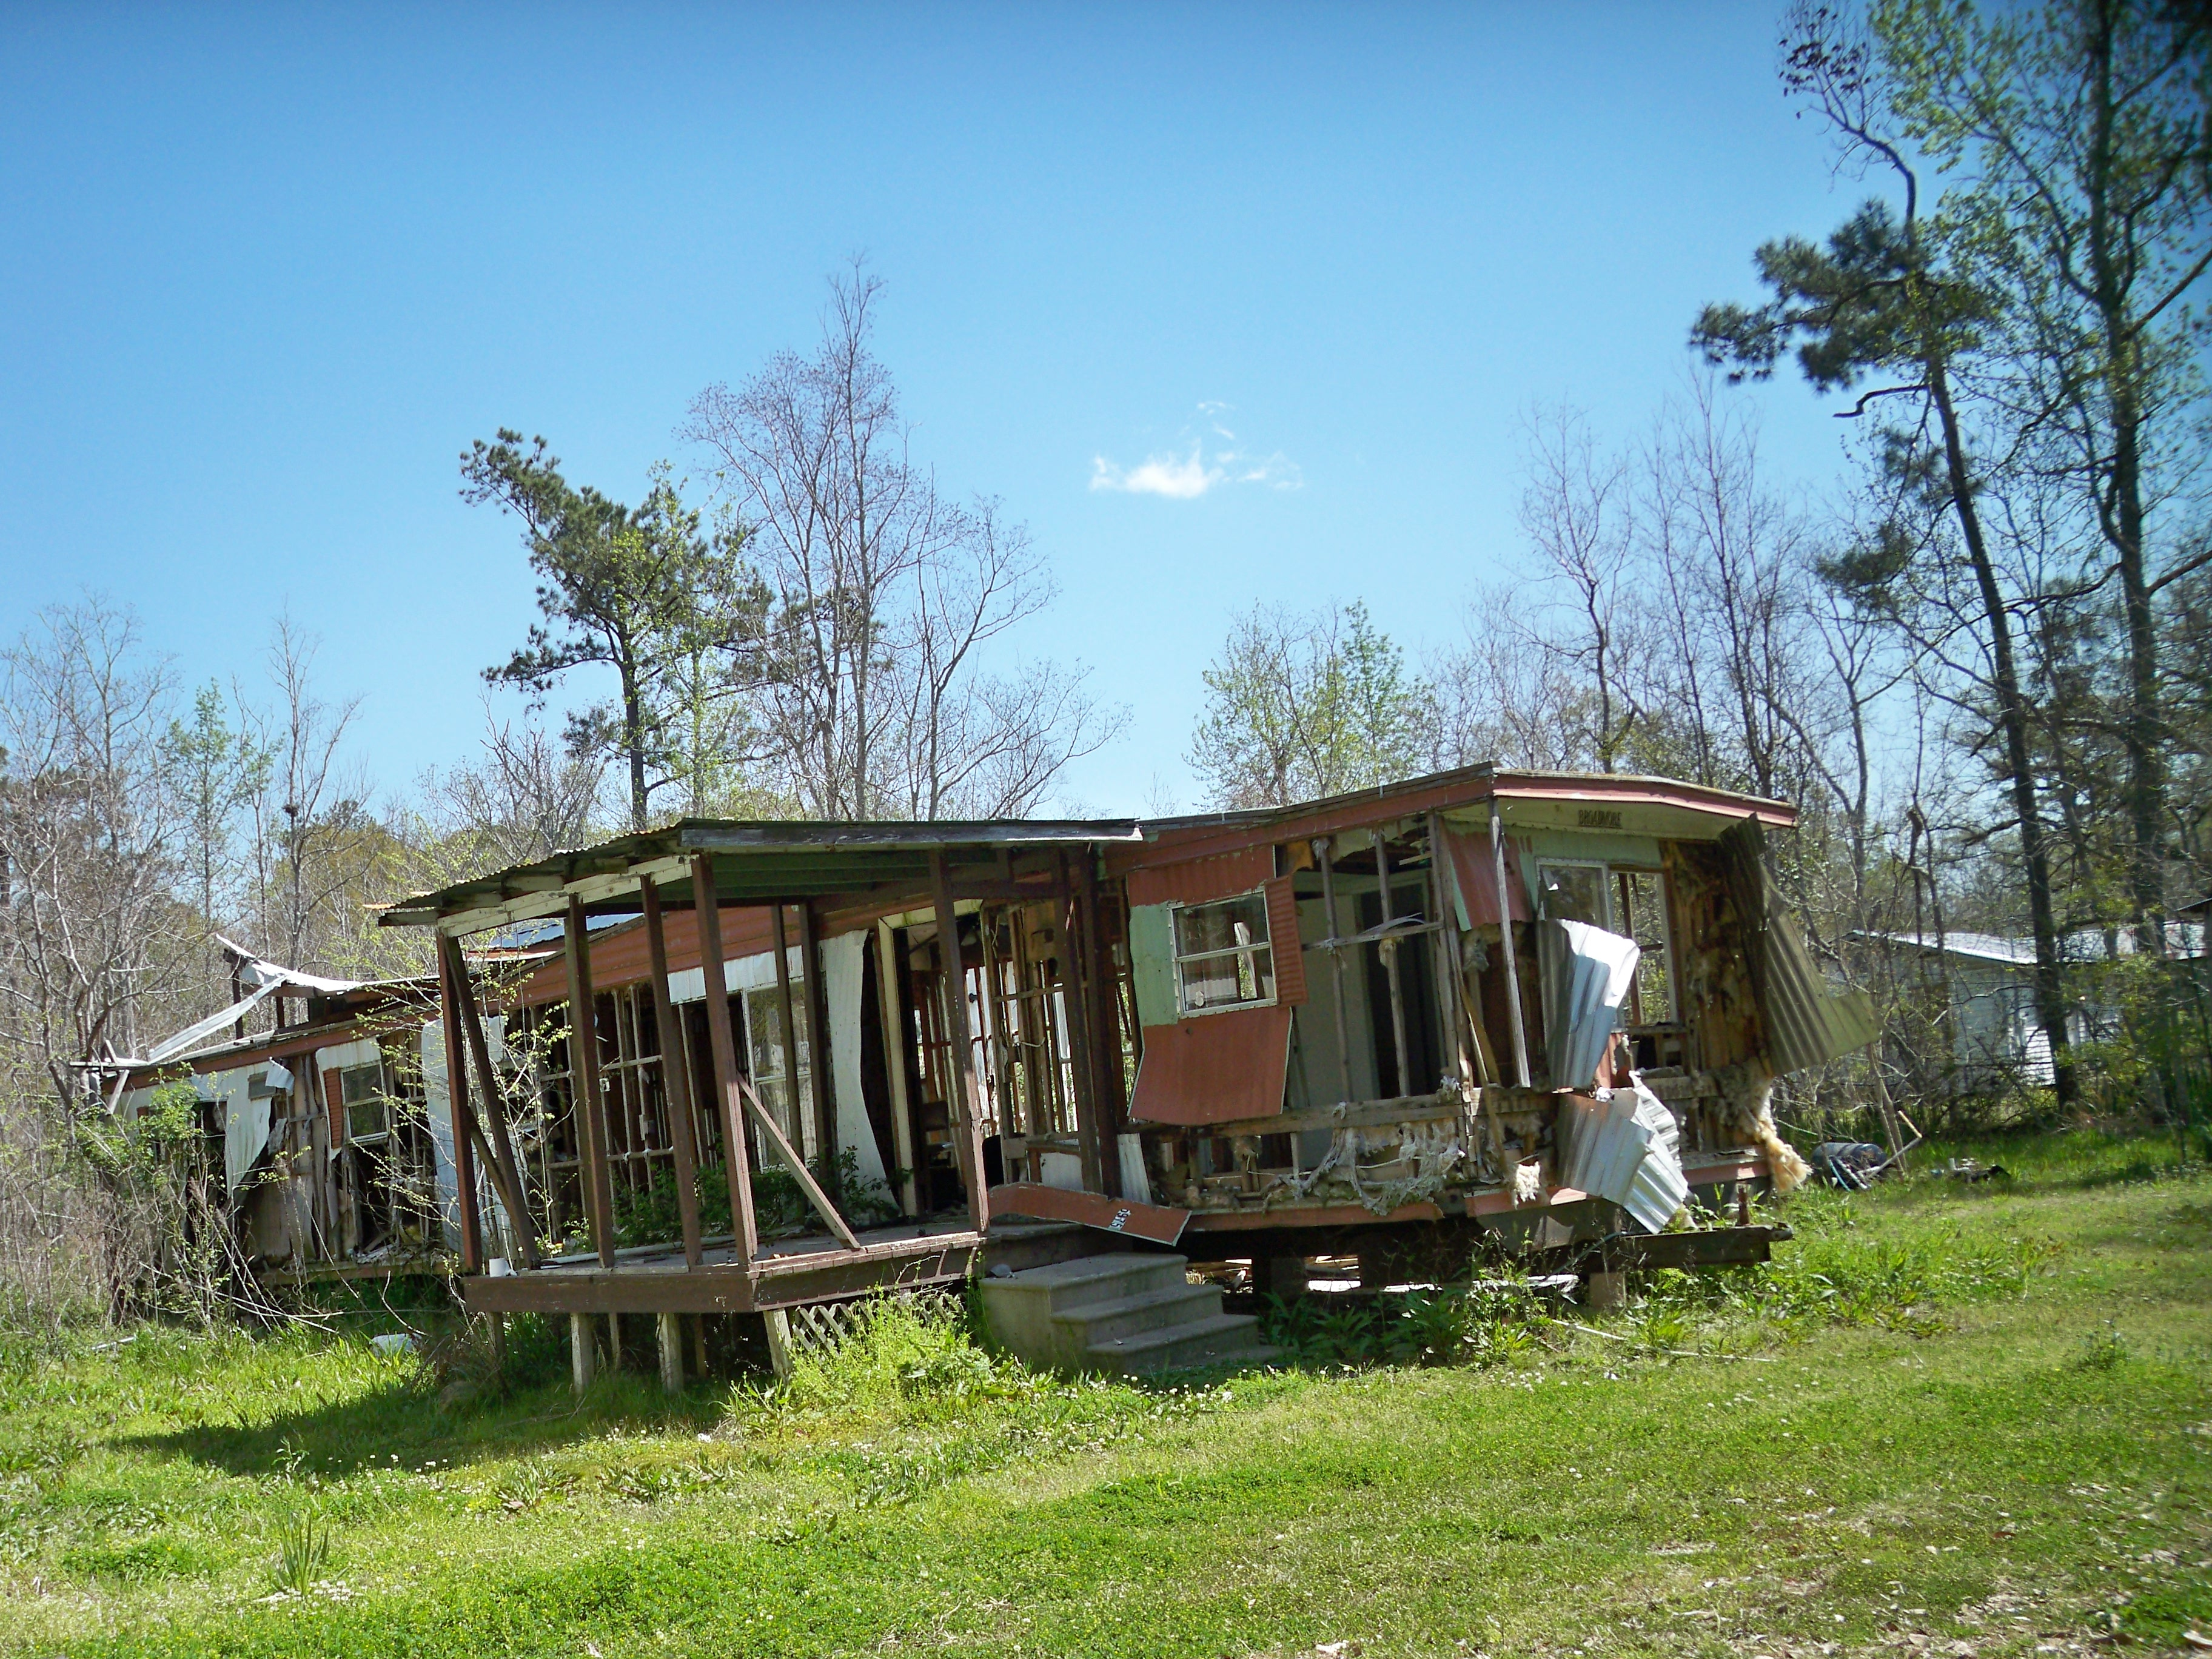 Dilapidated Mobile Home in Lacombe, LA – What I Saw Riding My Bike